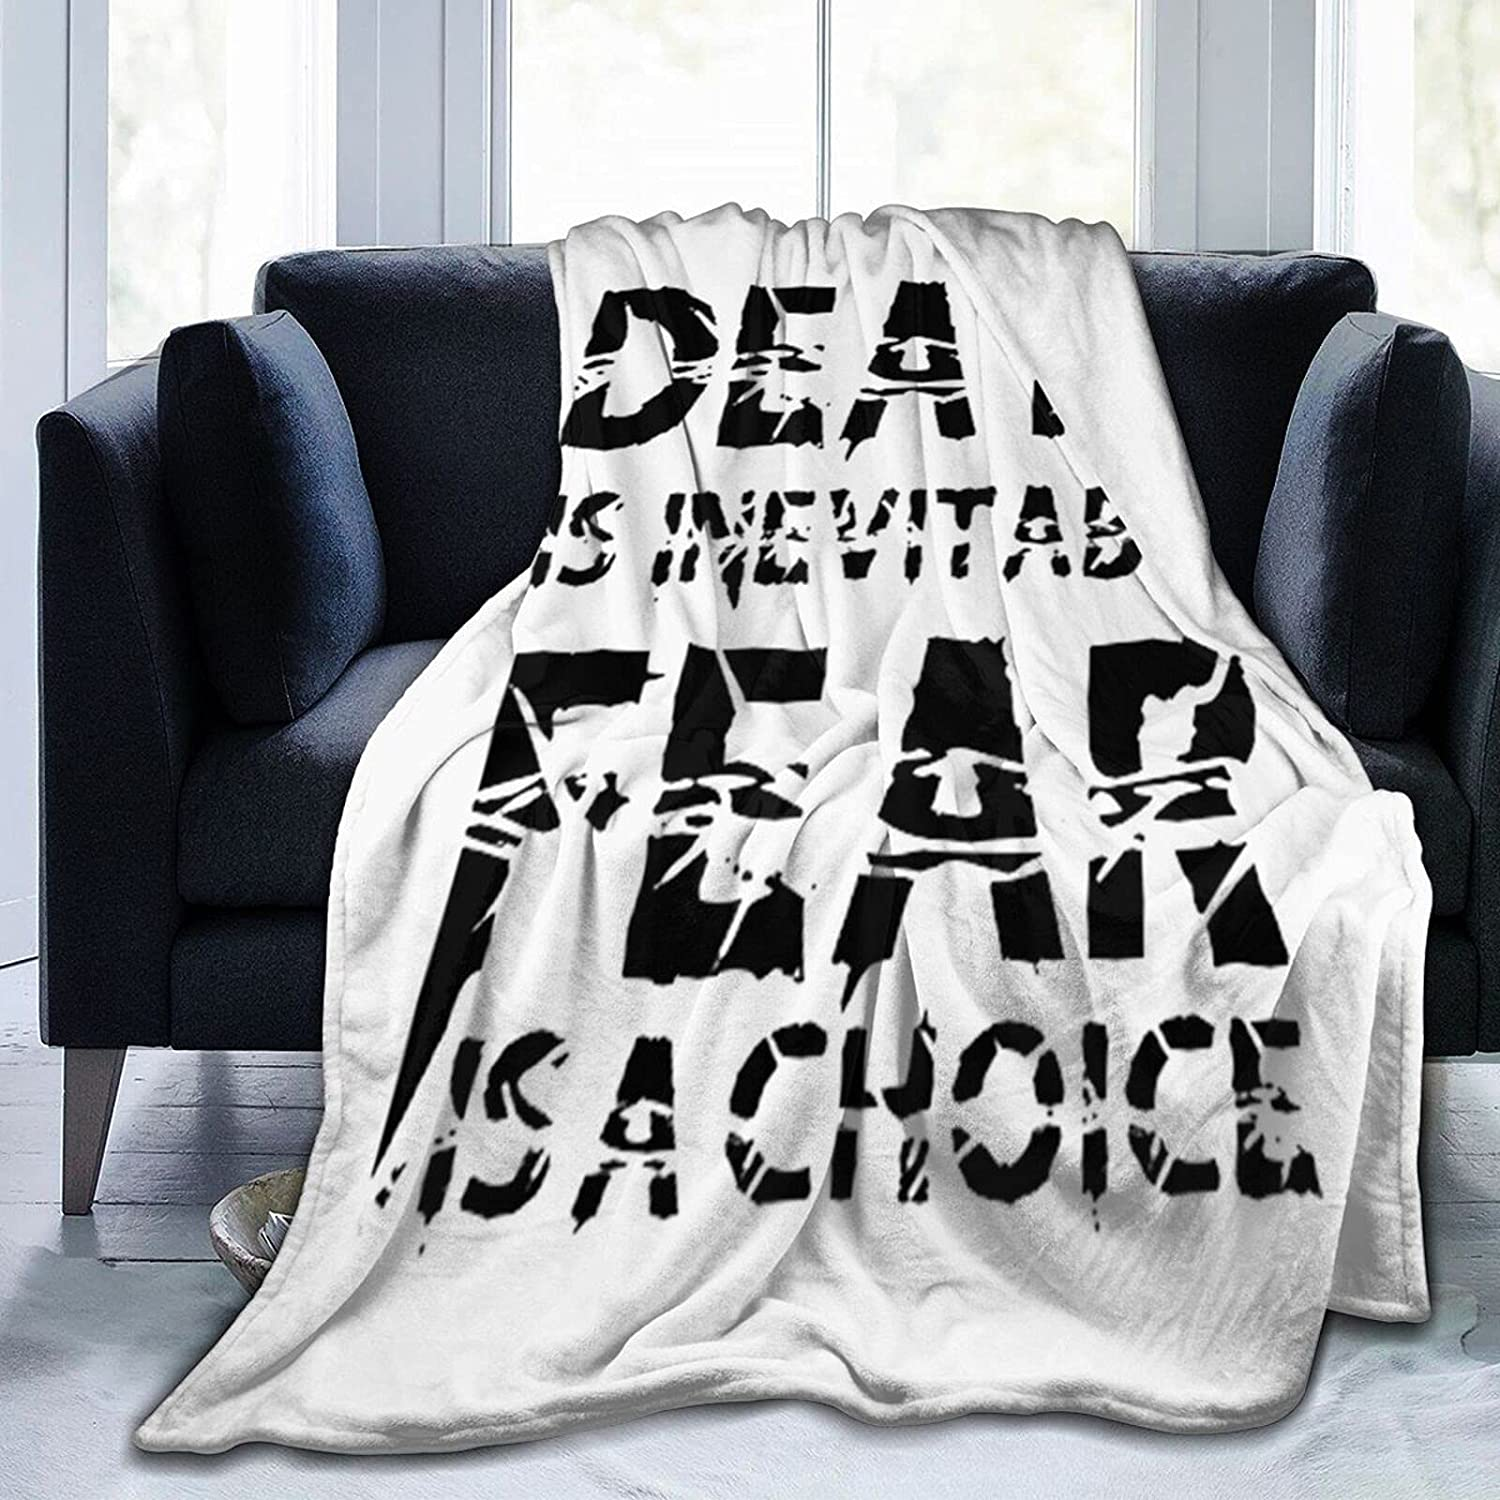 Death Super beauty product Cheap mail order specialty store restock quality top is Inevitable Blanket Soft Comfortable and Micr